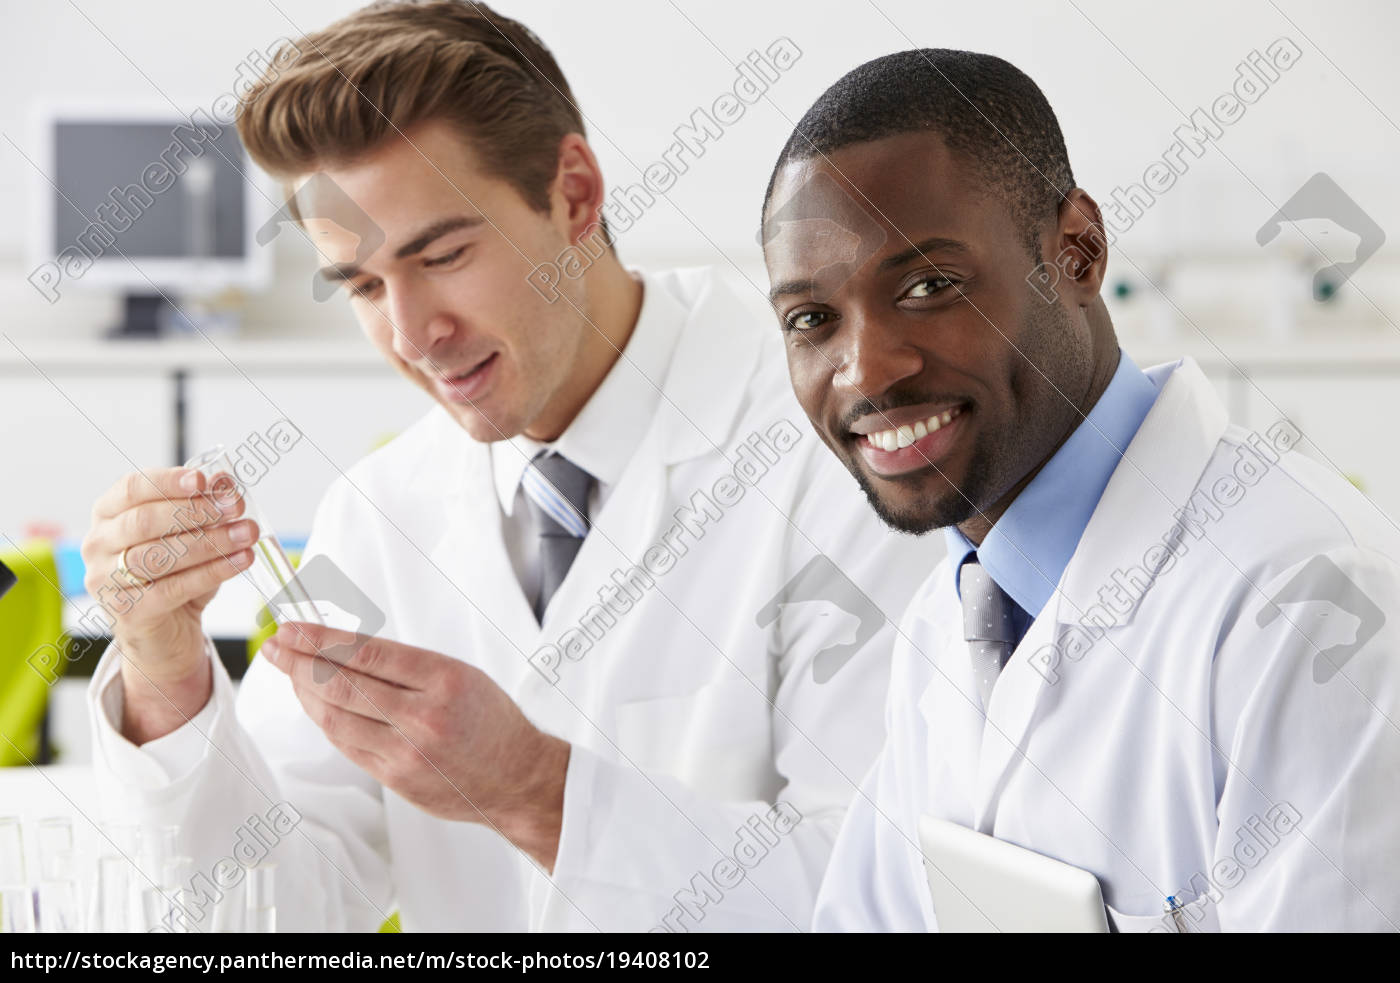 two, technicians, working, in, laboratory - 19408102